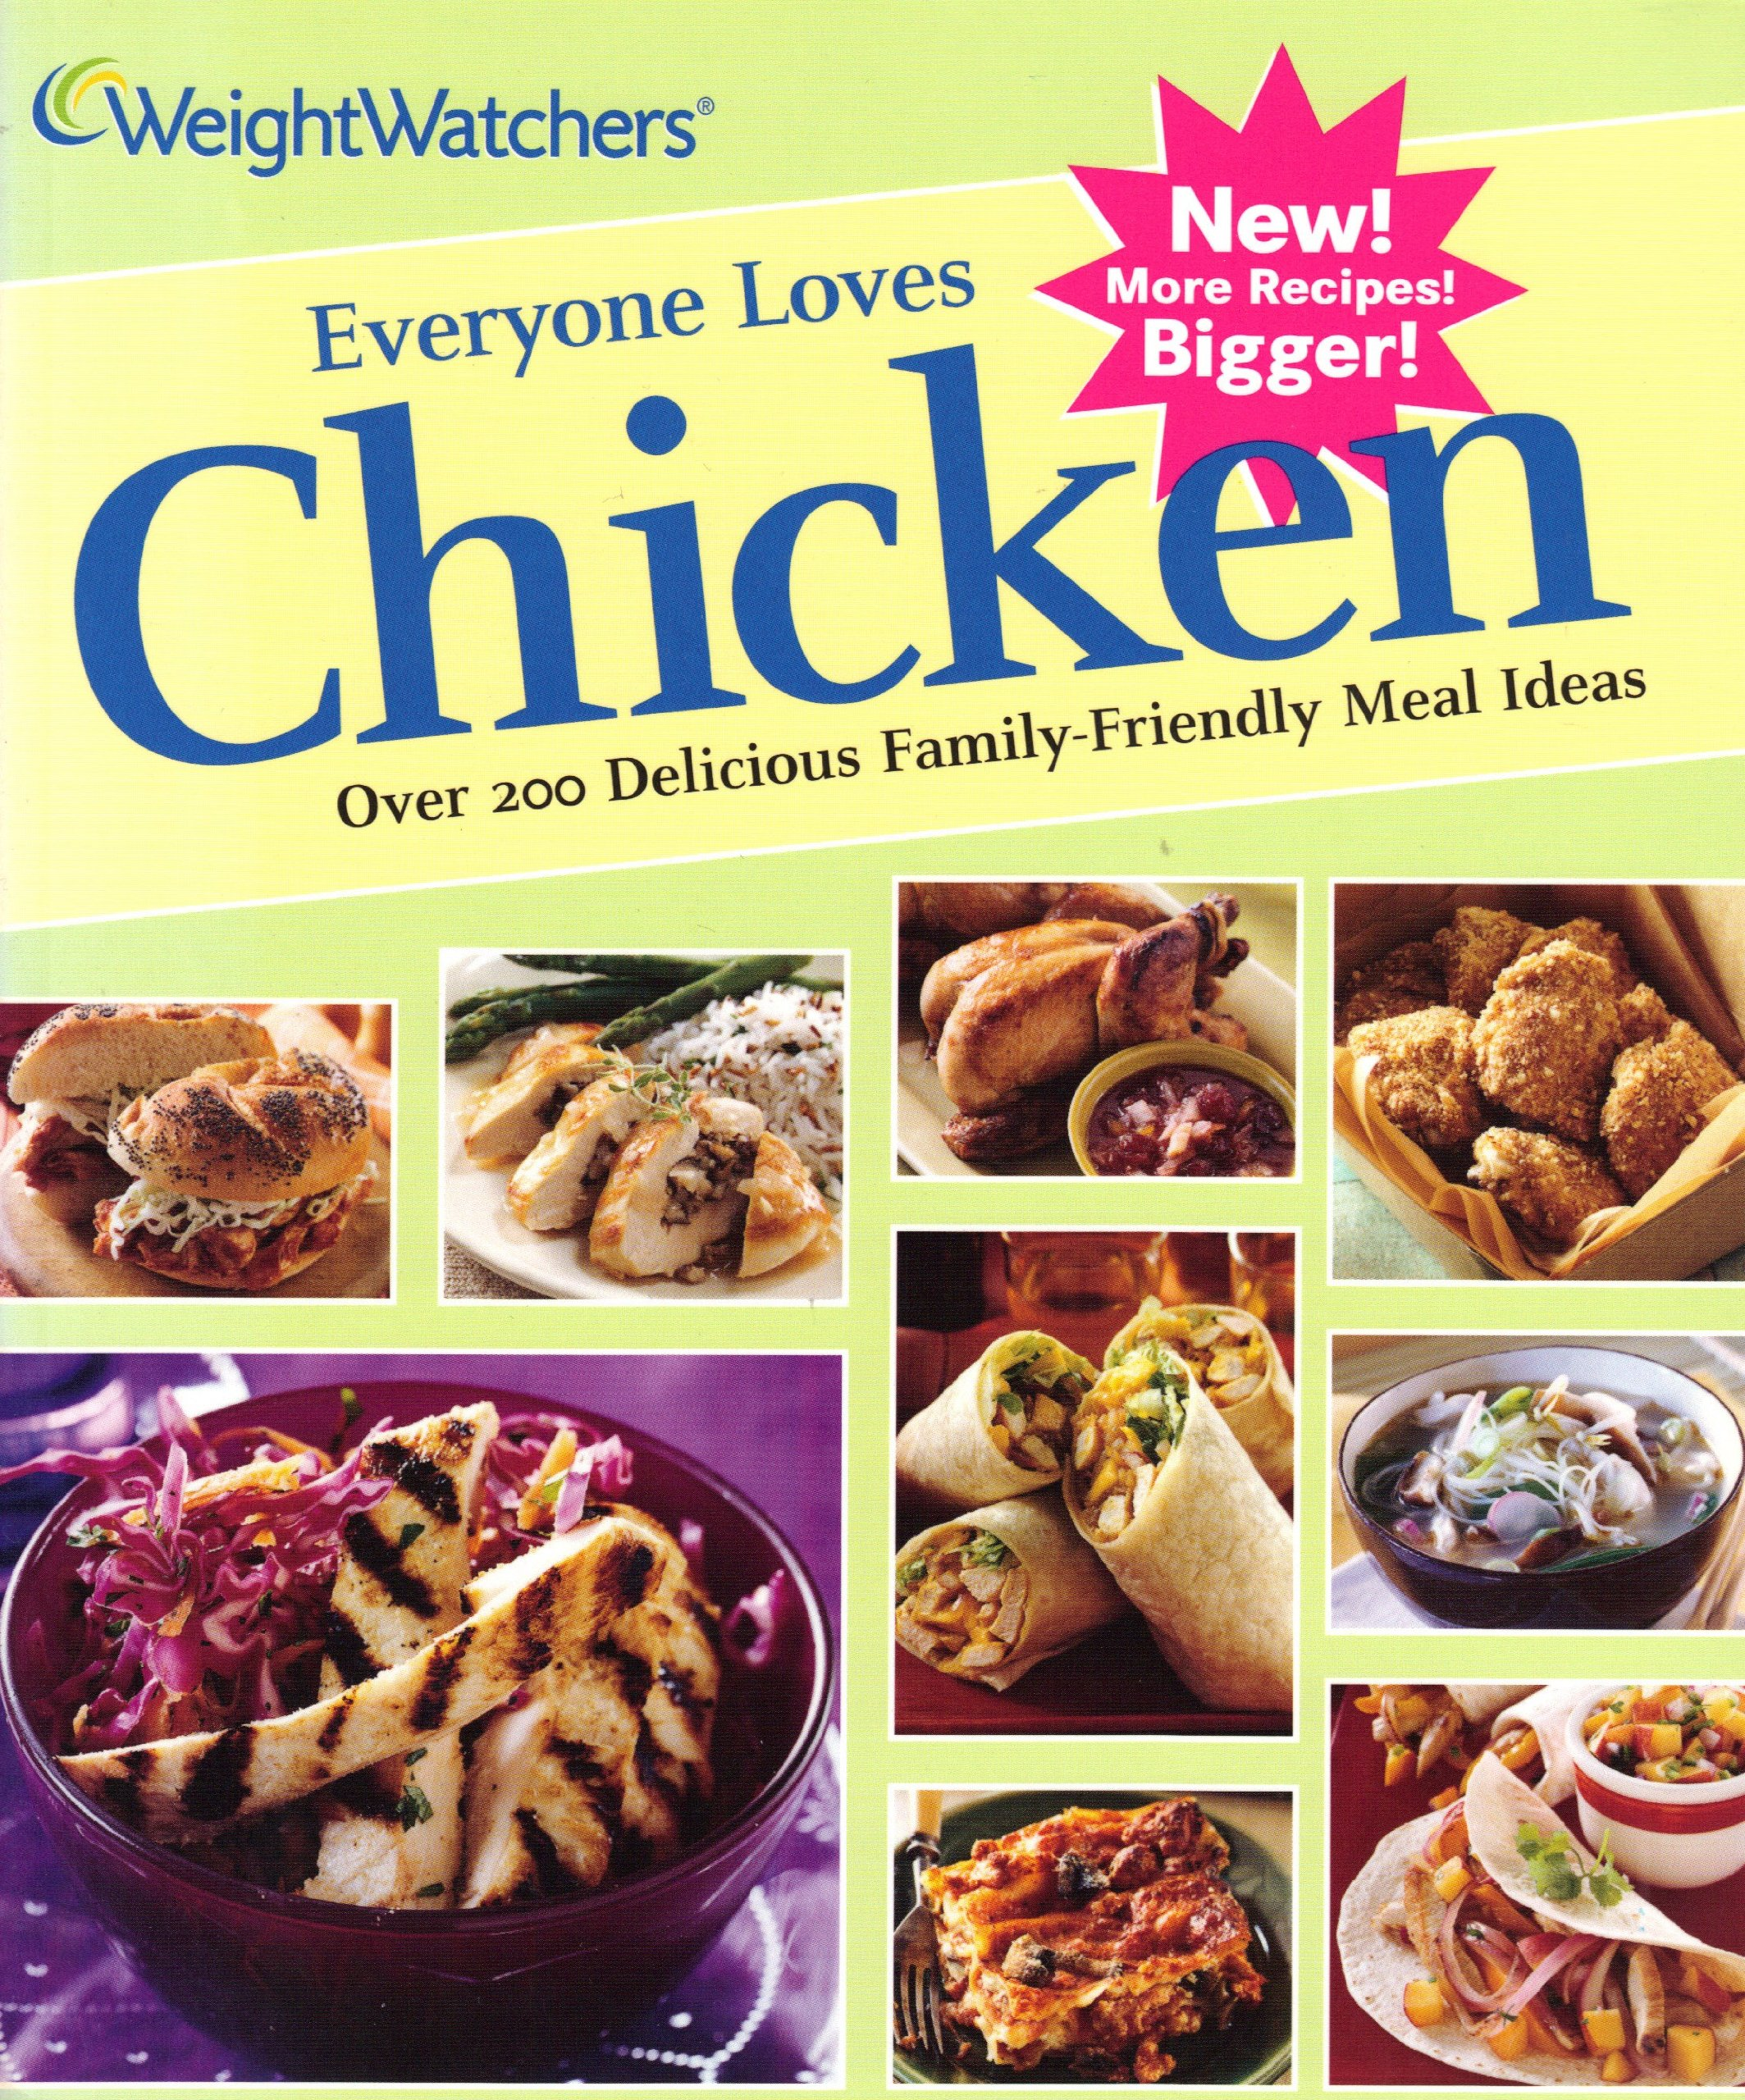 Weight Watcher's Everyone Loves Chicken; Over 200 Delicious Family-Friendly Meal Ideas